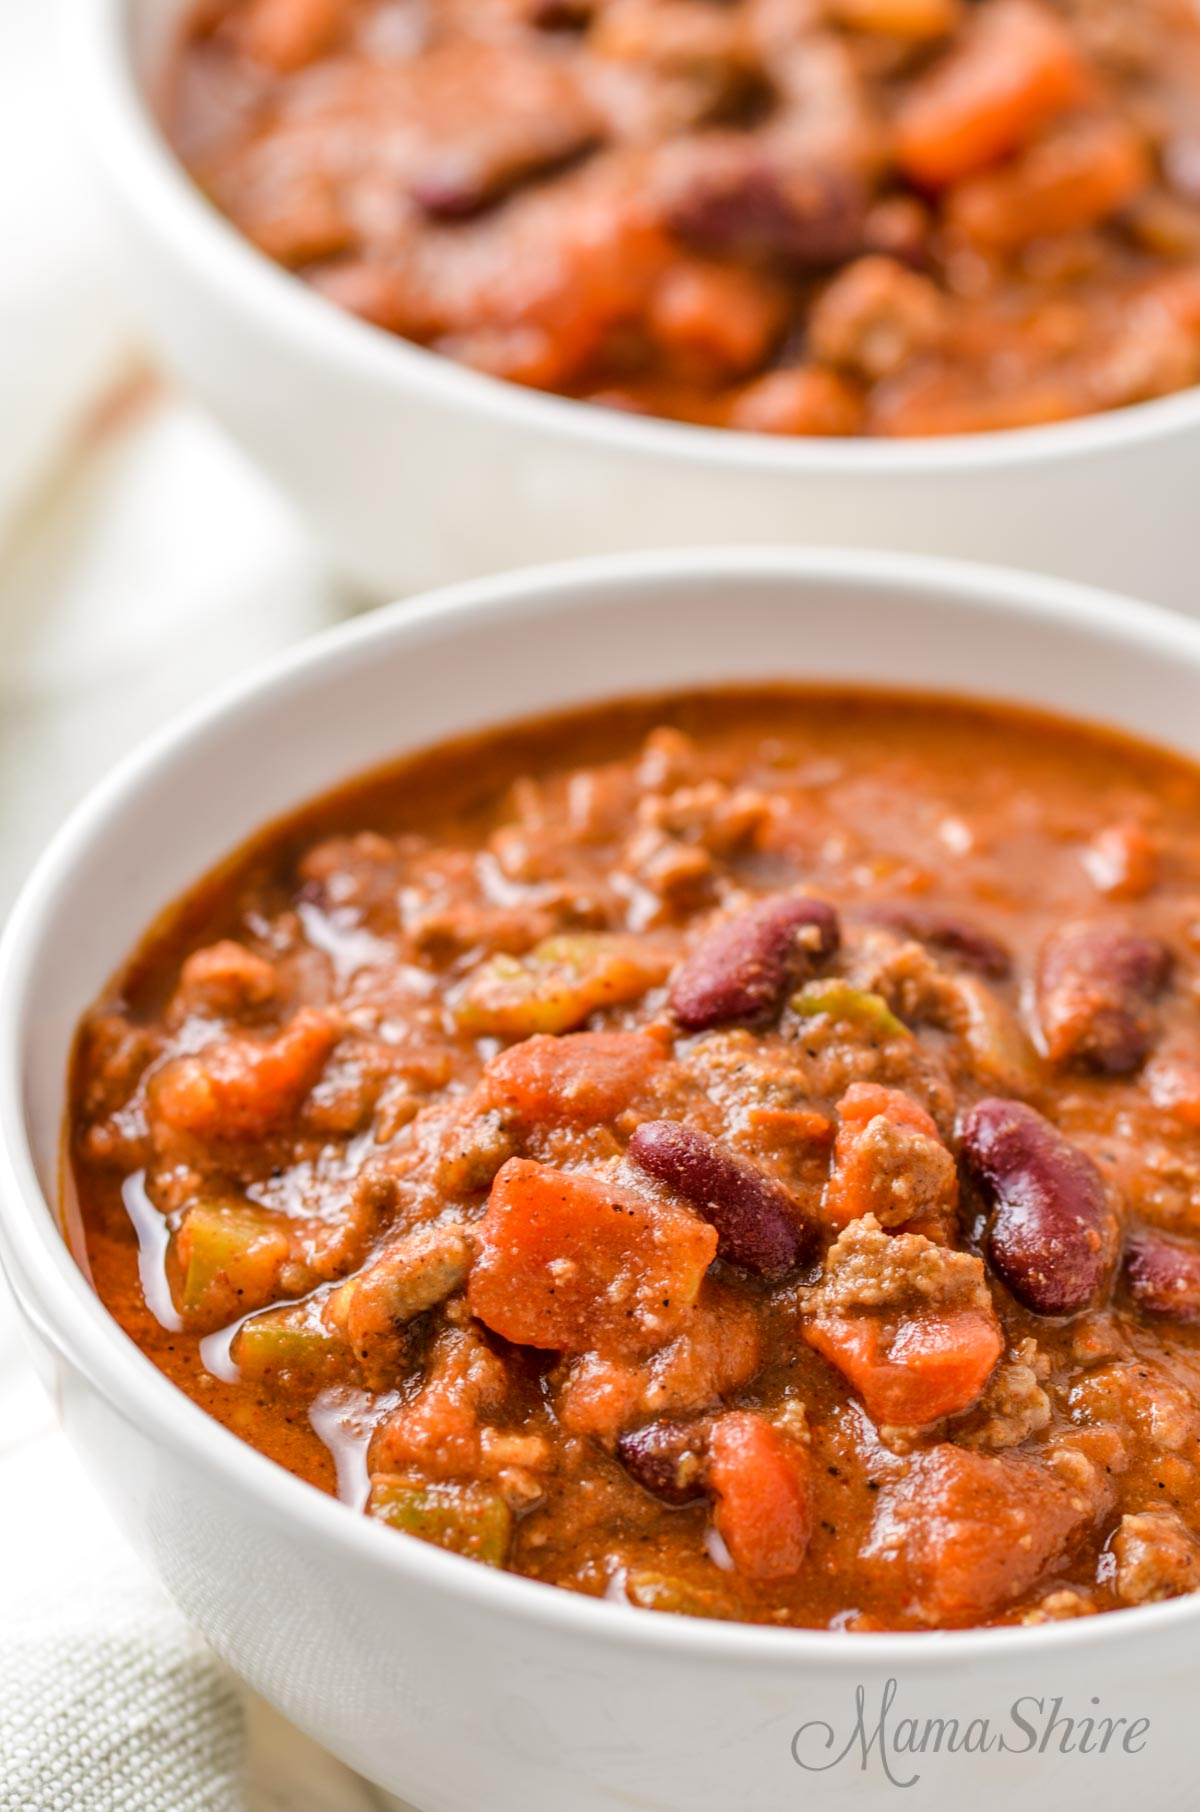 Two bowls of gluten-free chili